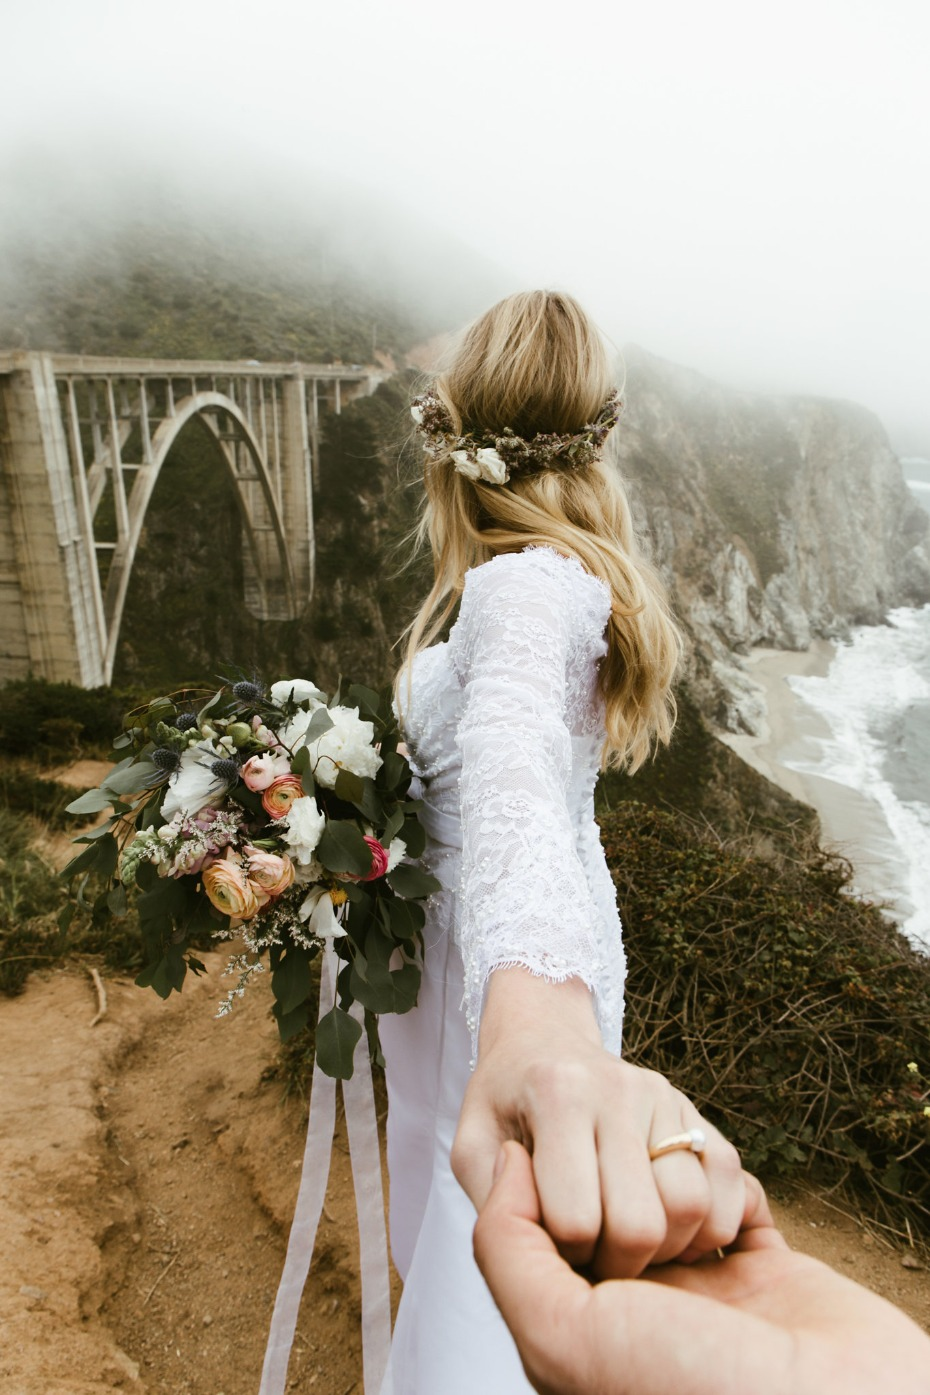 Let's get married on the coast